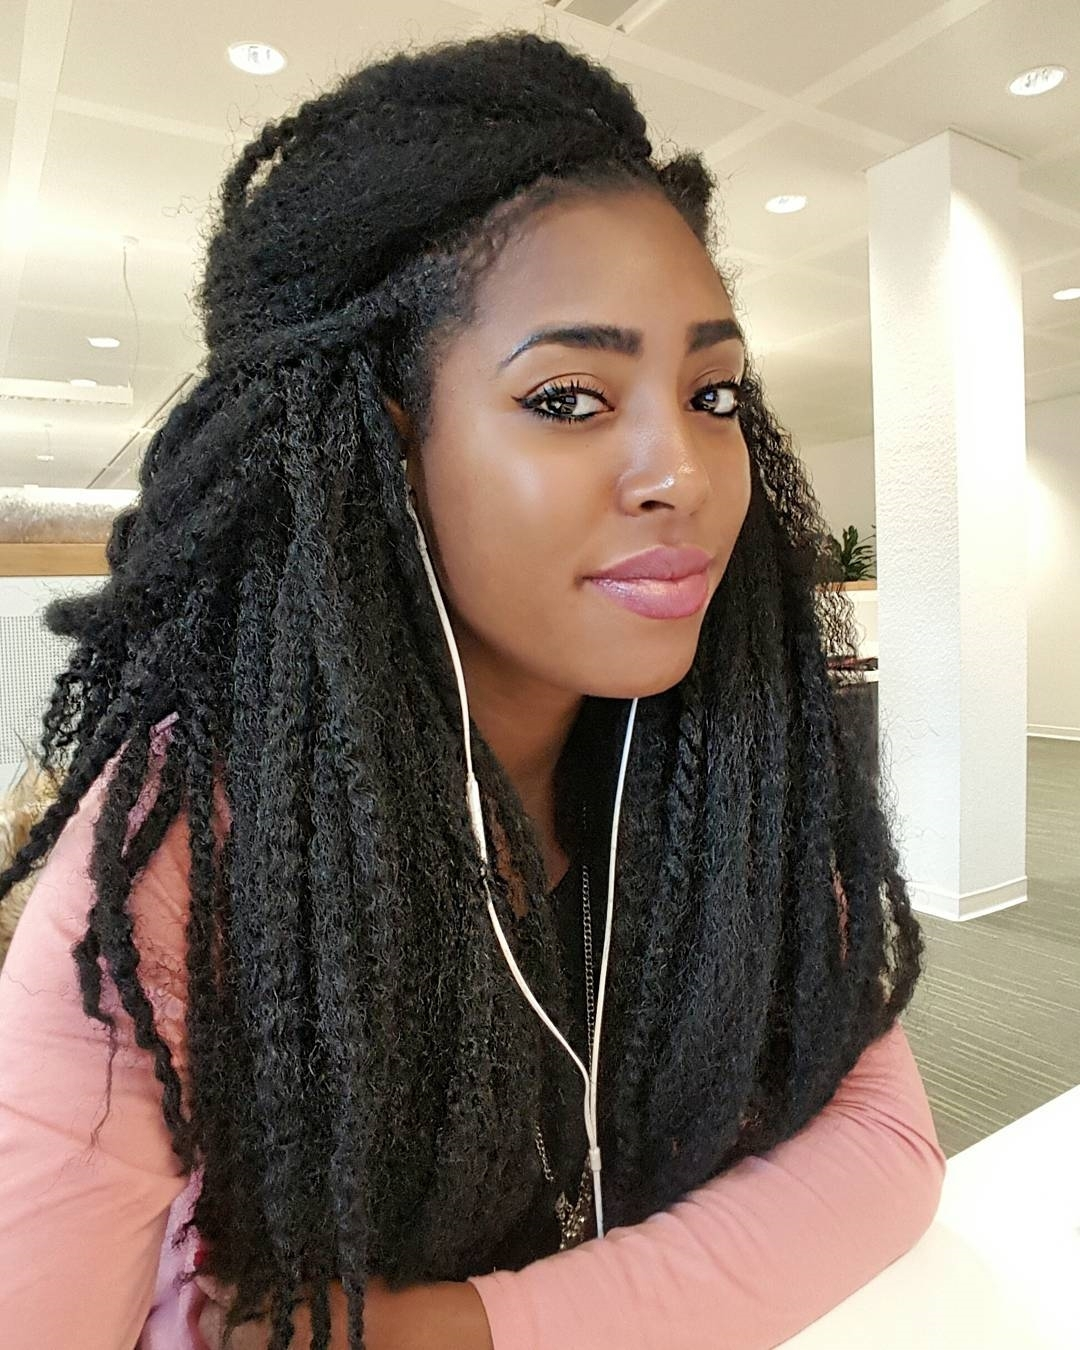 50 chic crochet weave hairstyles designs worth trying for Salon locks twists tresses